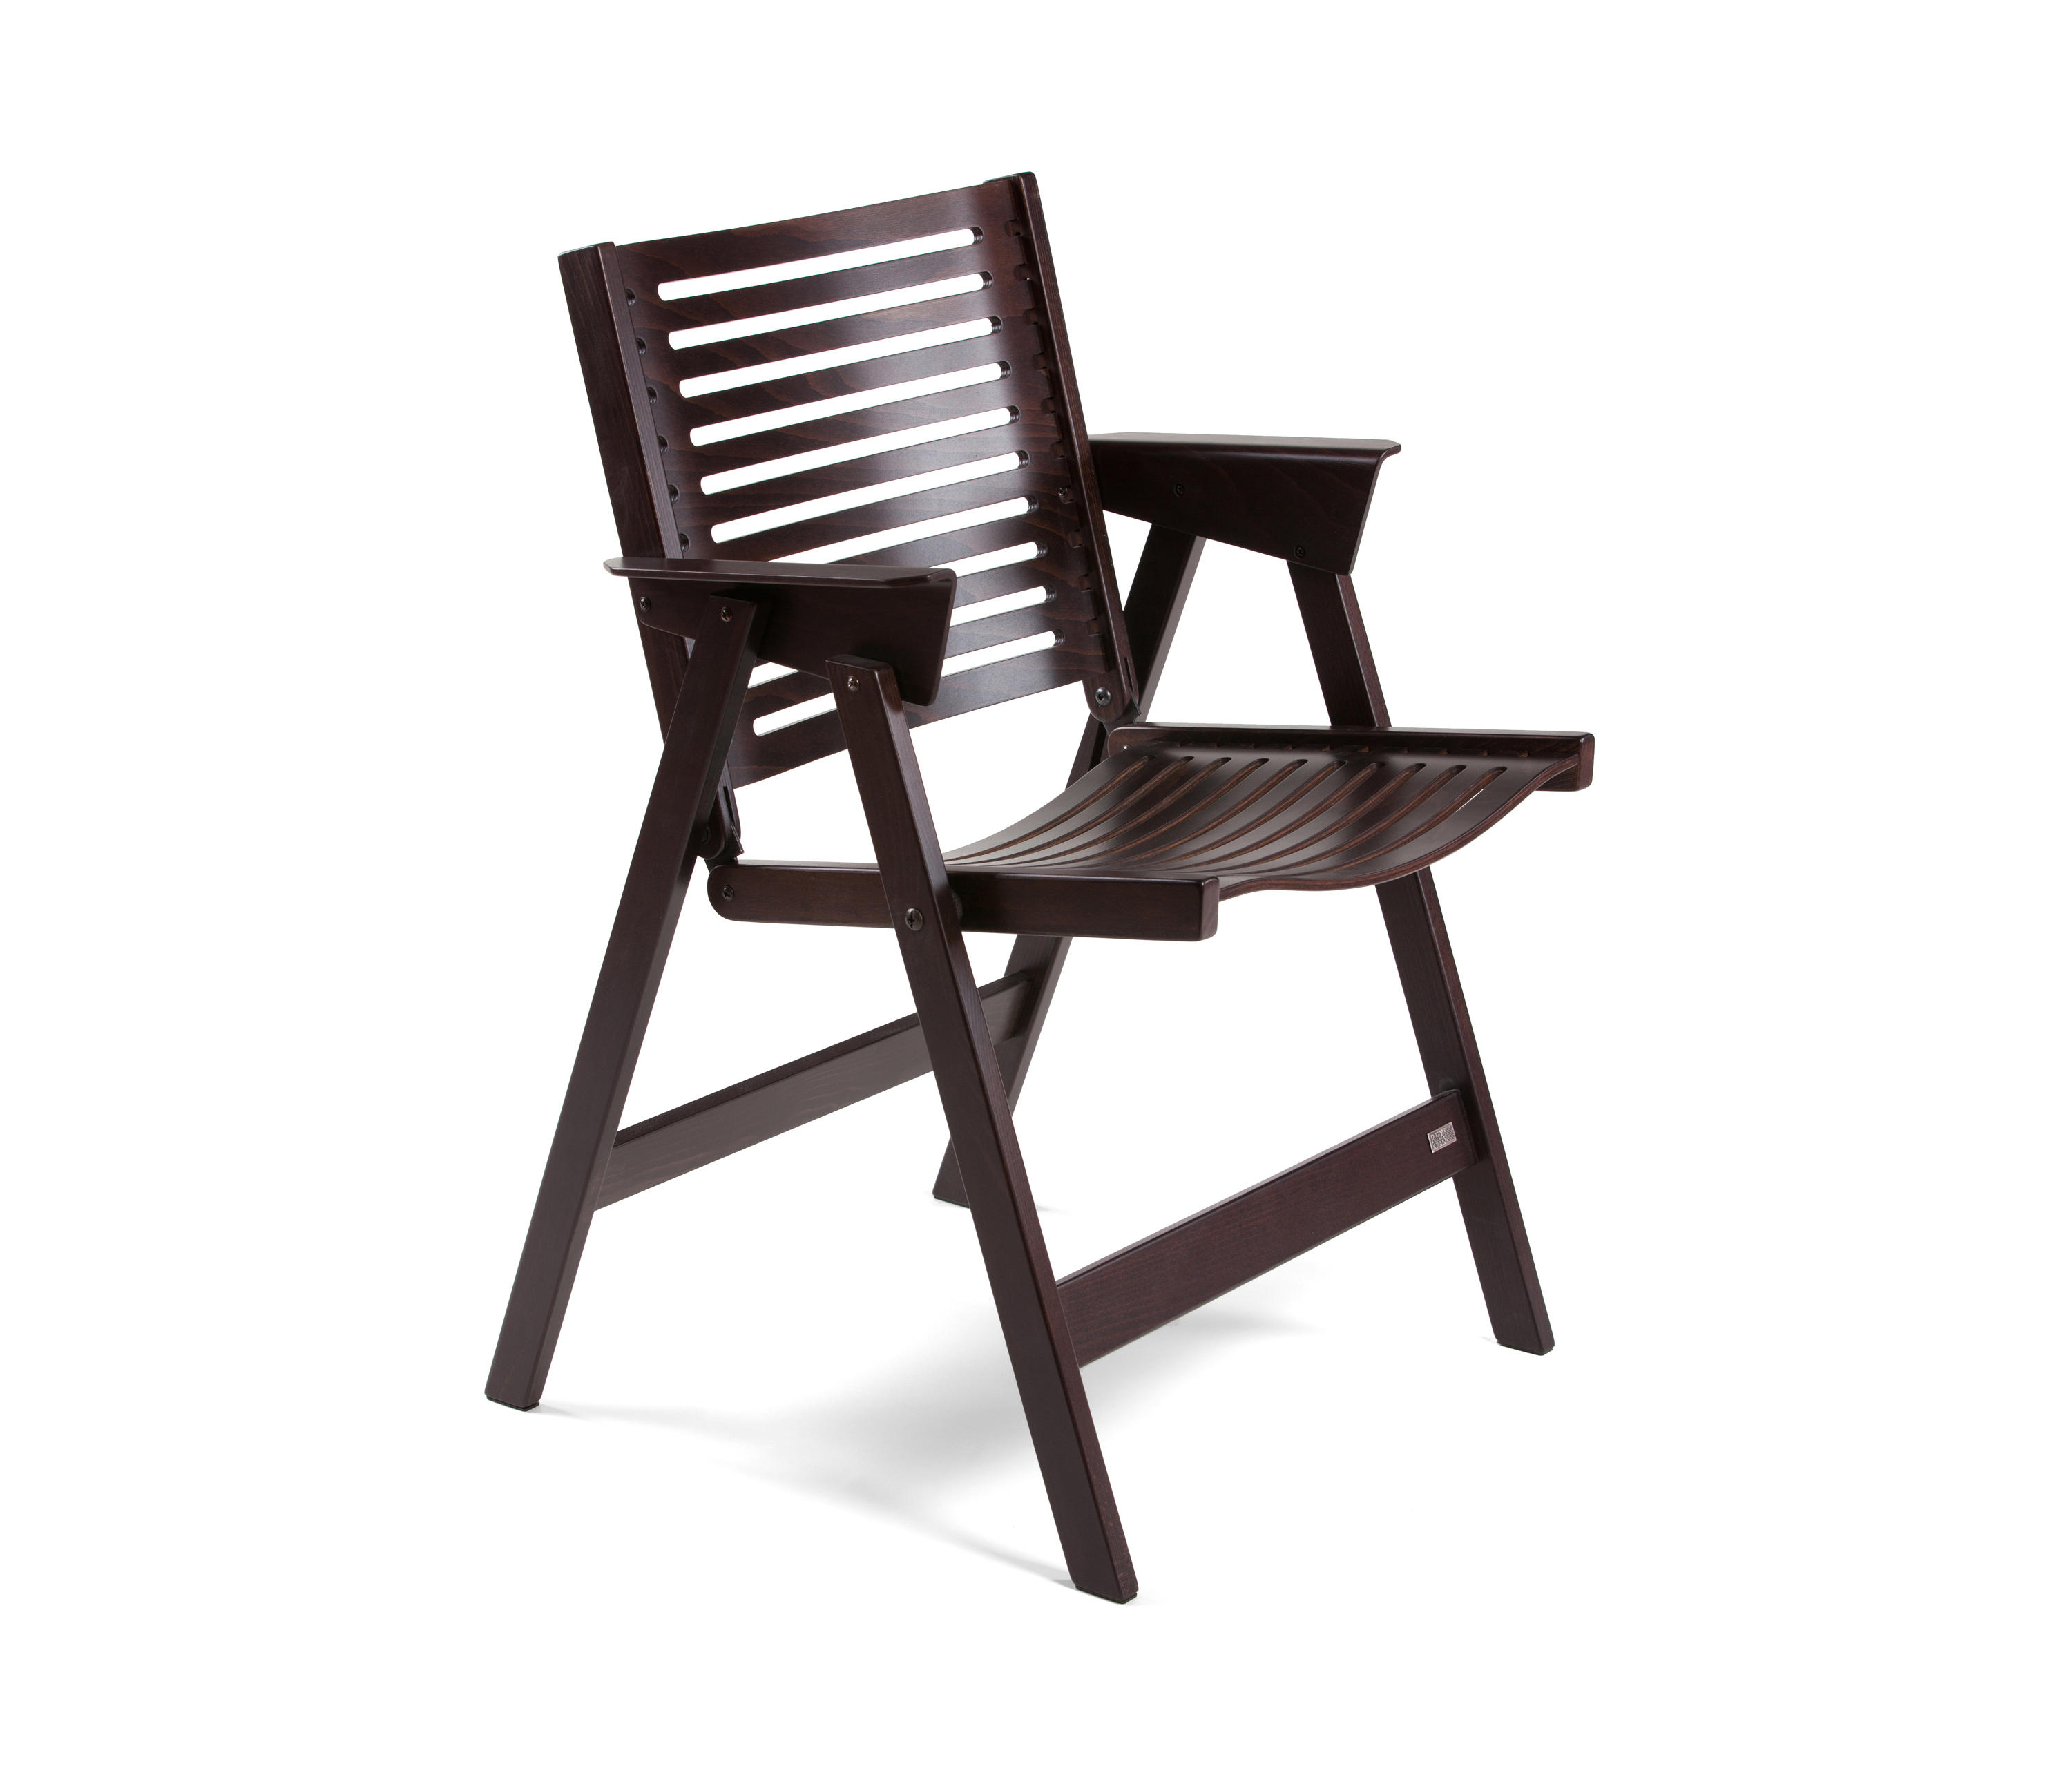 REX CHAIR DARK BROWN Garden chairs from Rex Kralj